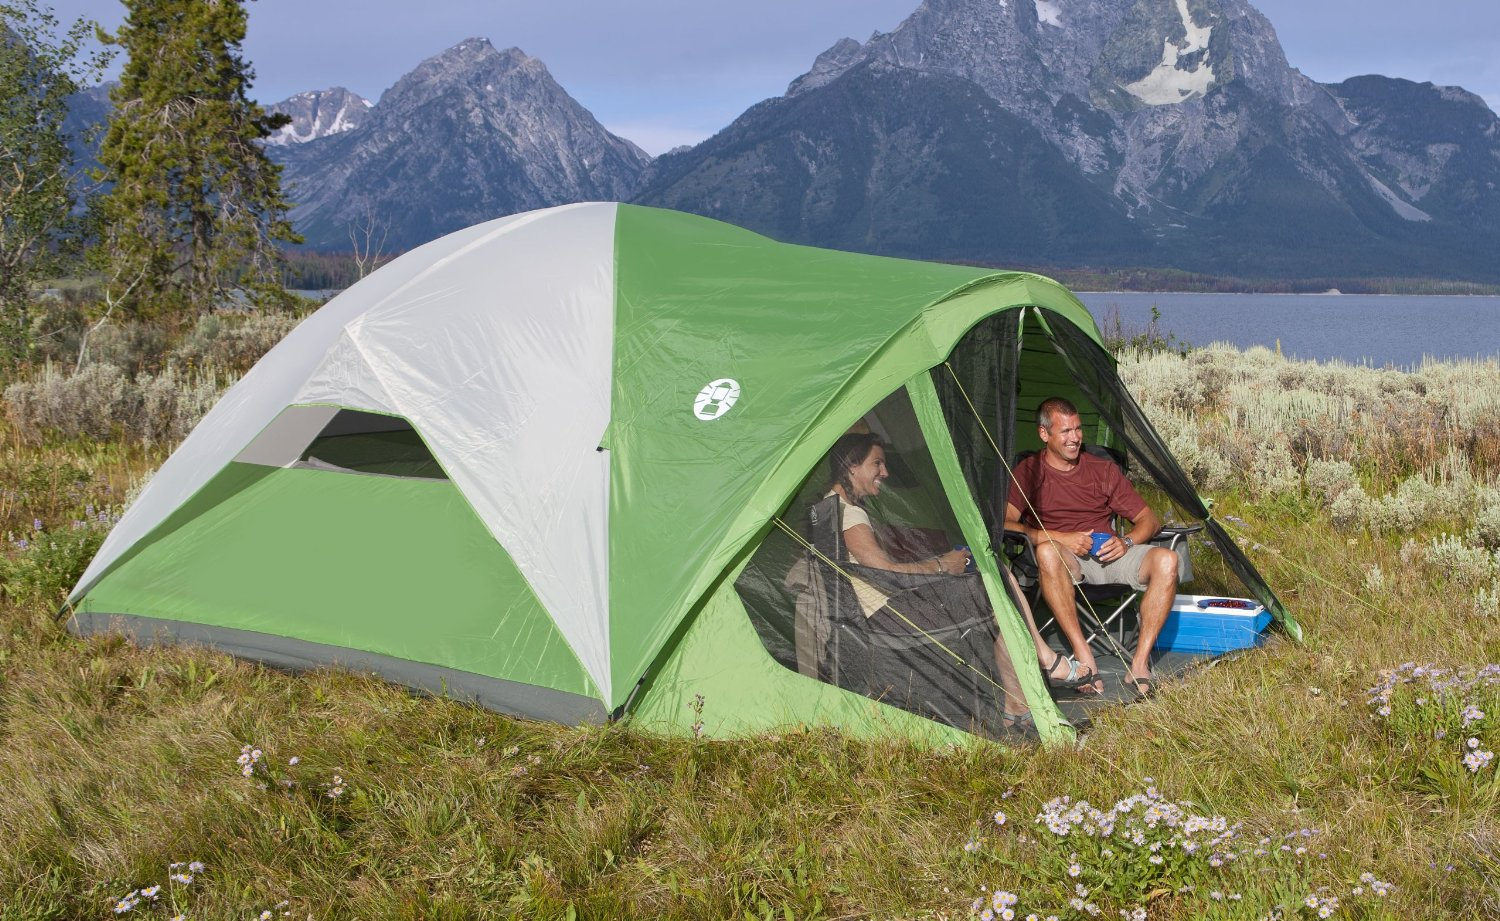 ?????Coleman????8???????? & ideali-store | Rakuten Global Market: !! Screen tent Coleman ...